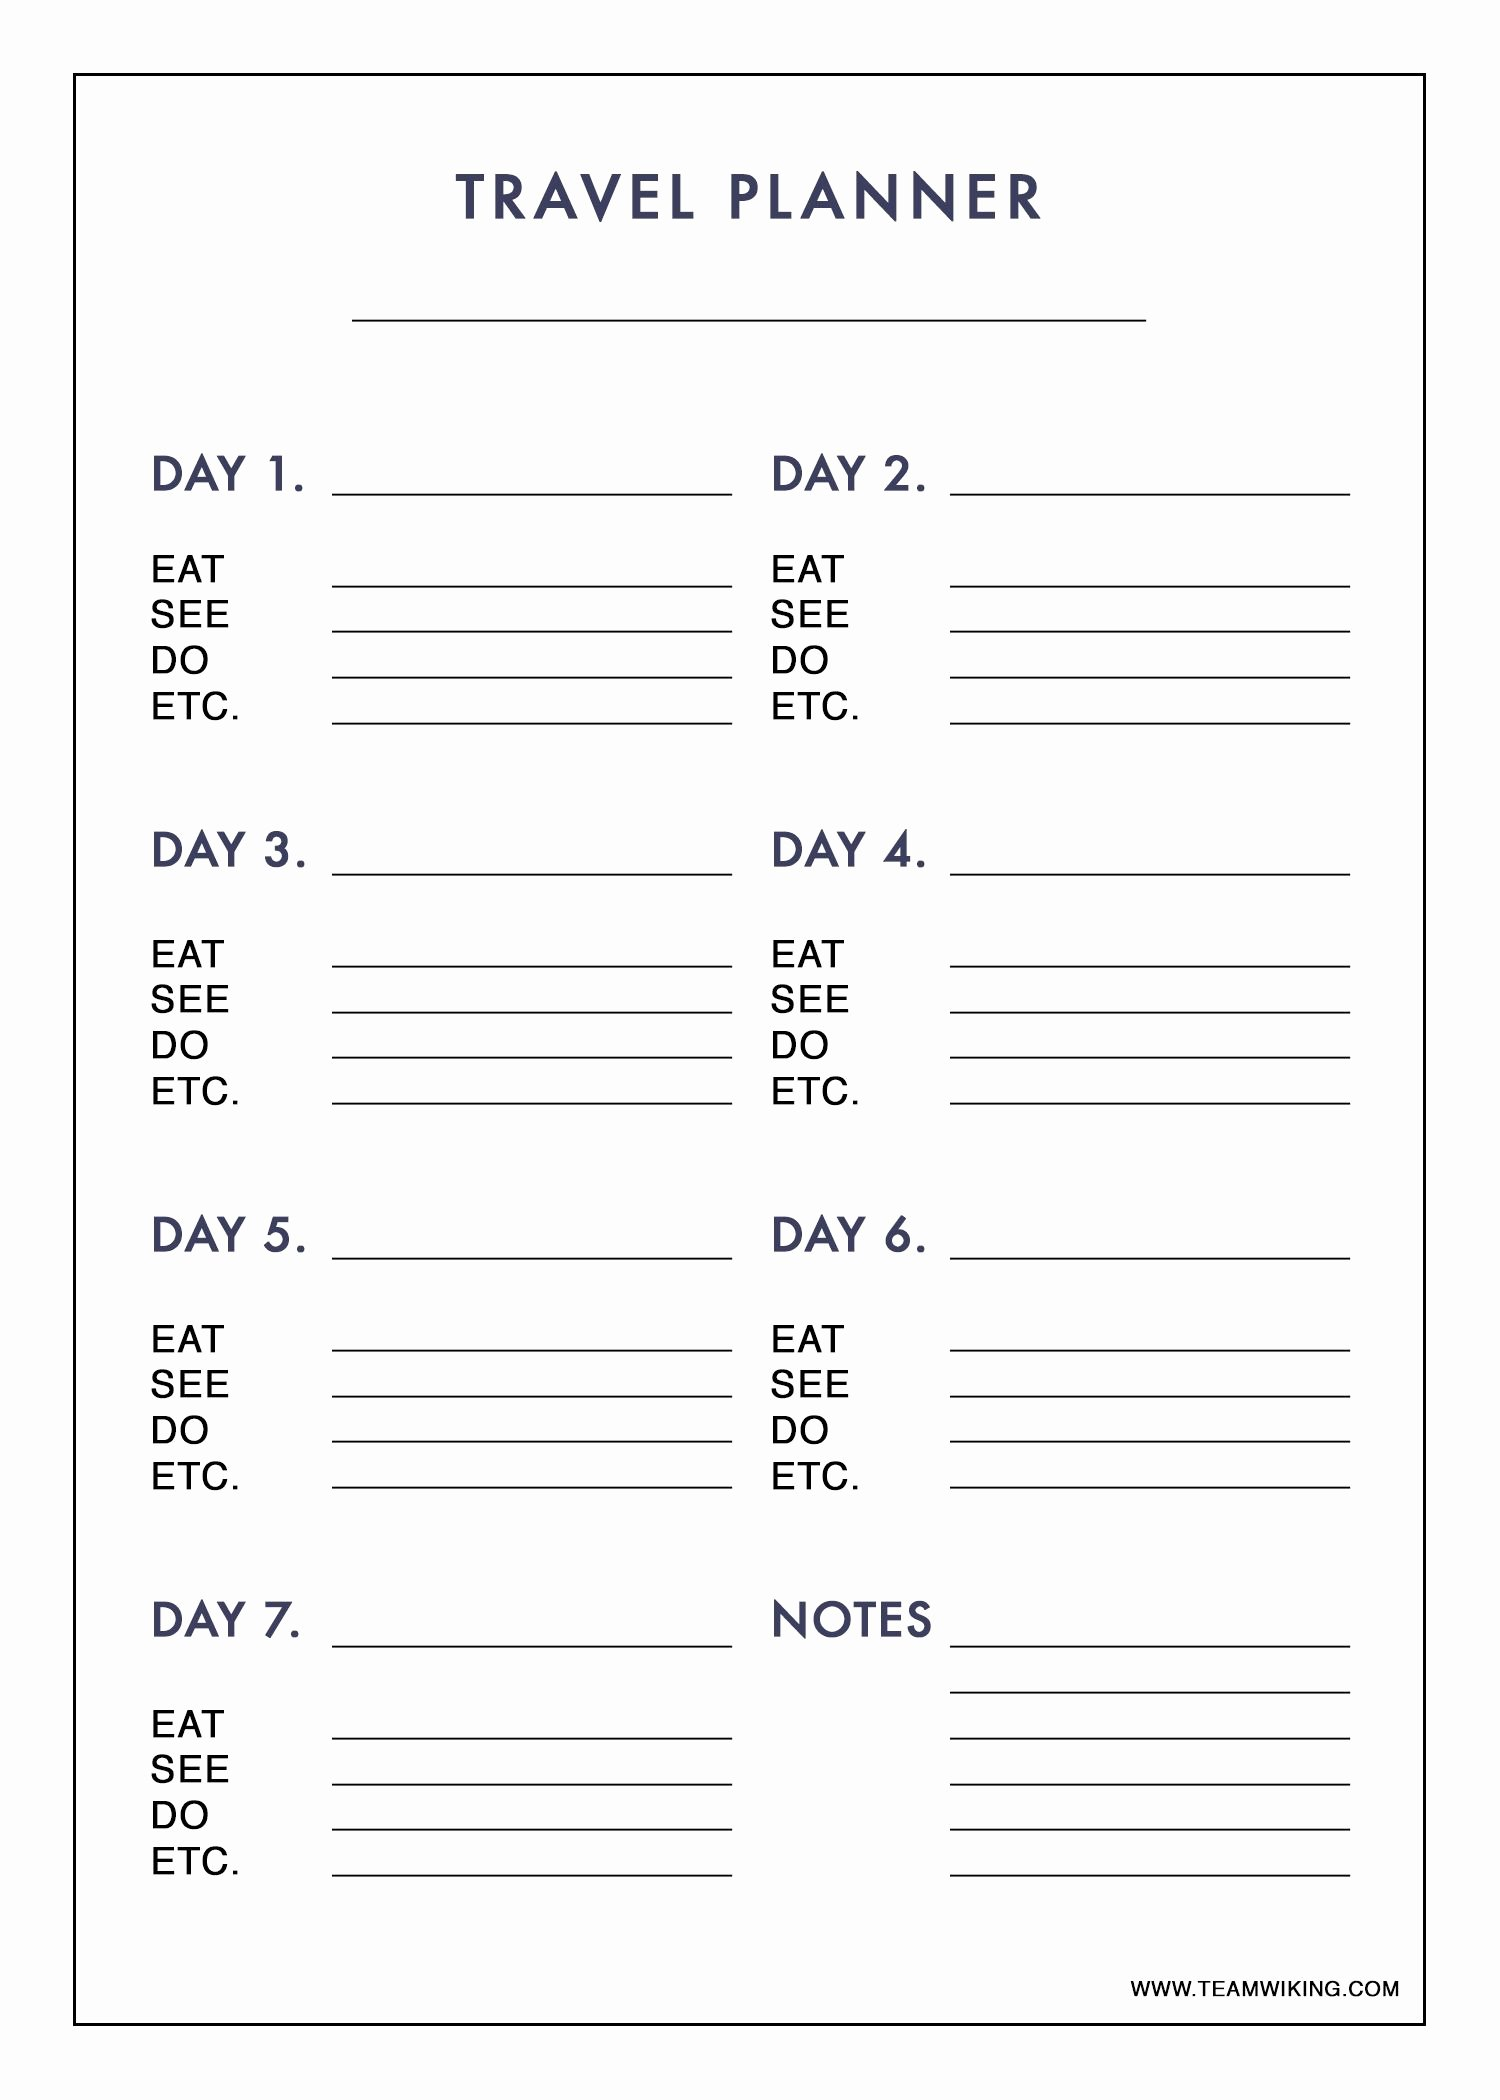 7 Day Planner Template Unique Free Printable 7 Day Travel Planner Use to Plan Outfits